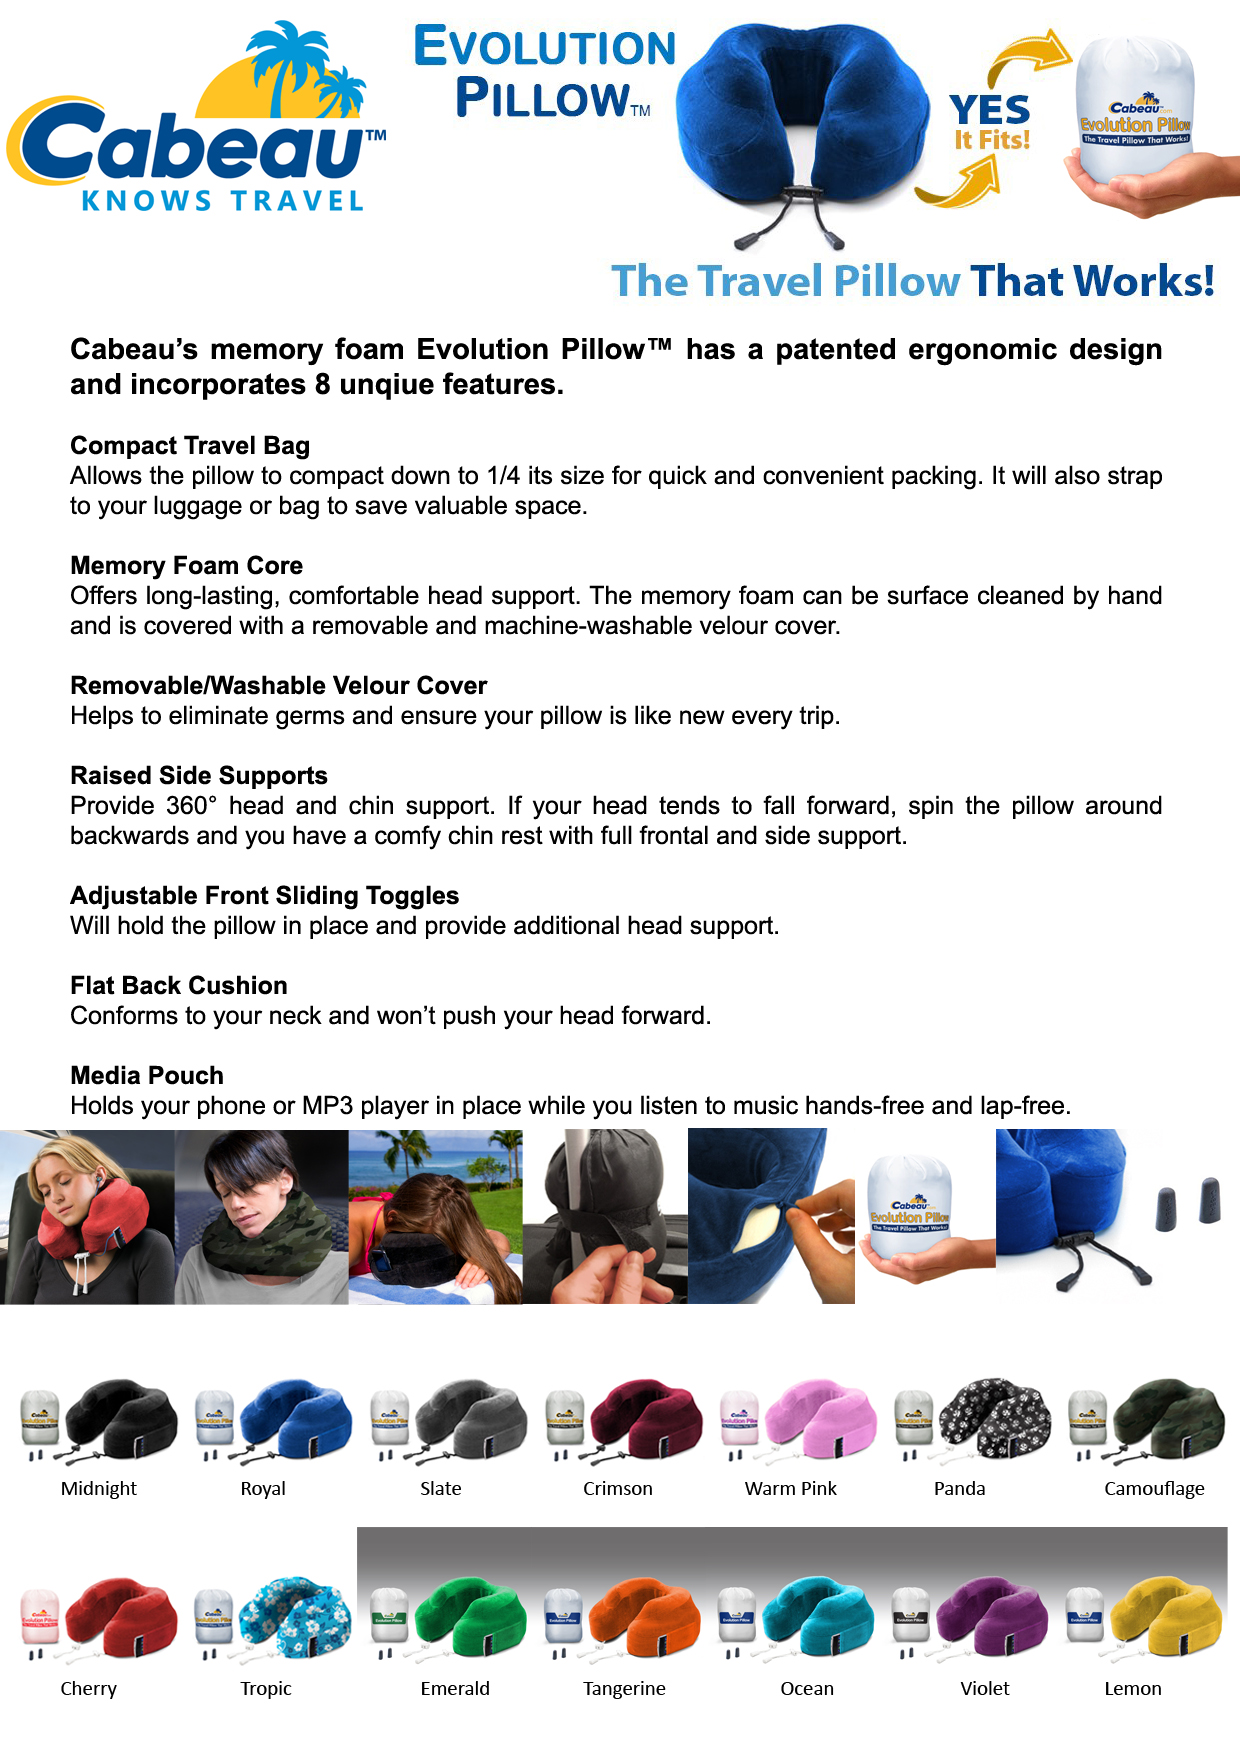 memory foam evolution pillow - Cabeau Evolution Pillow